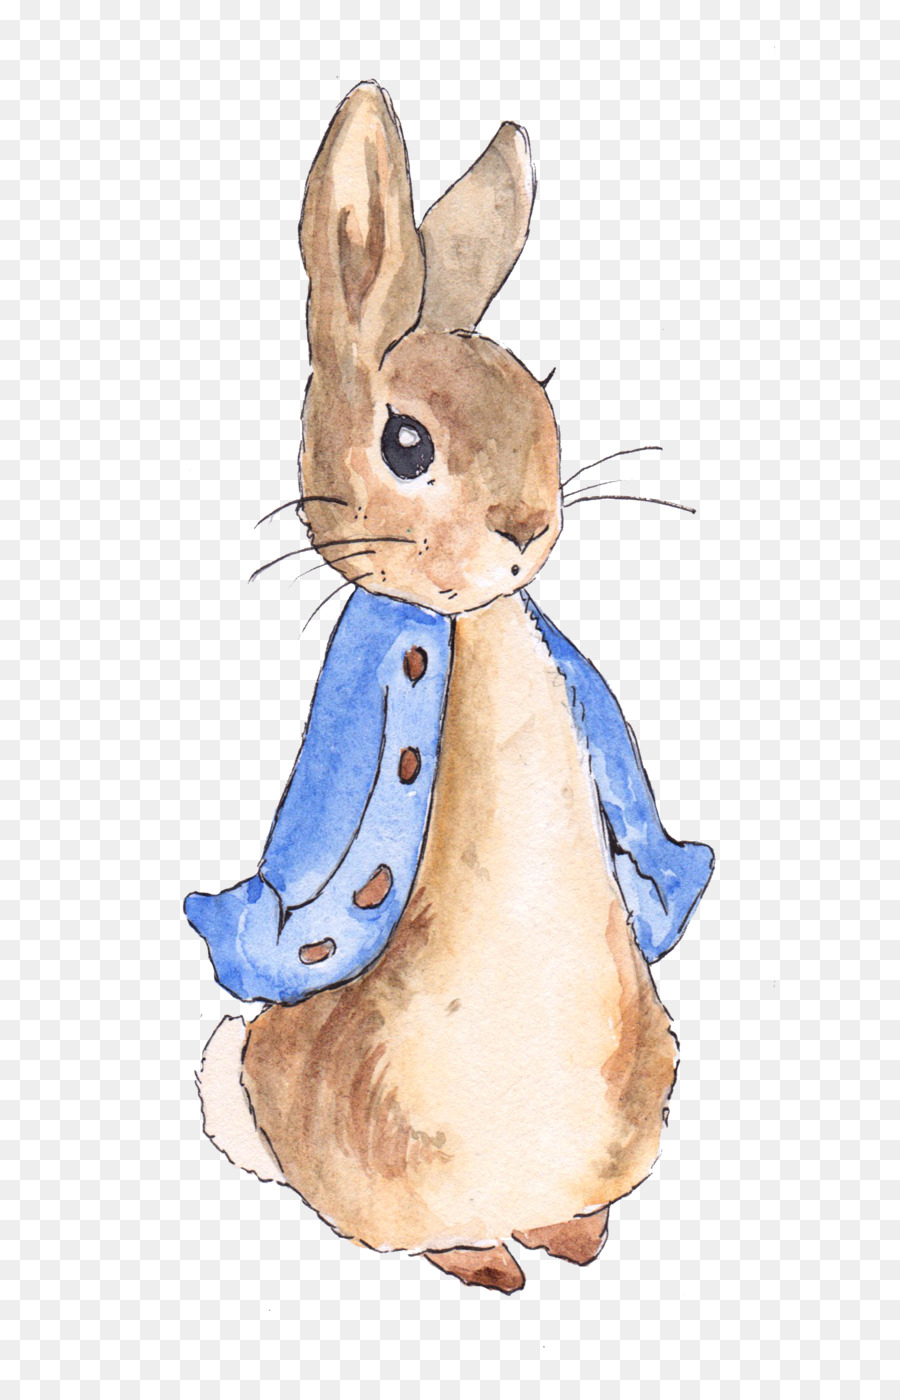 900x1400 The Tale Of Peter Rabbit The Tale Of The Flopsy Bunnies Create